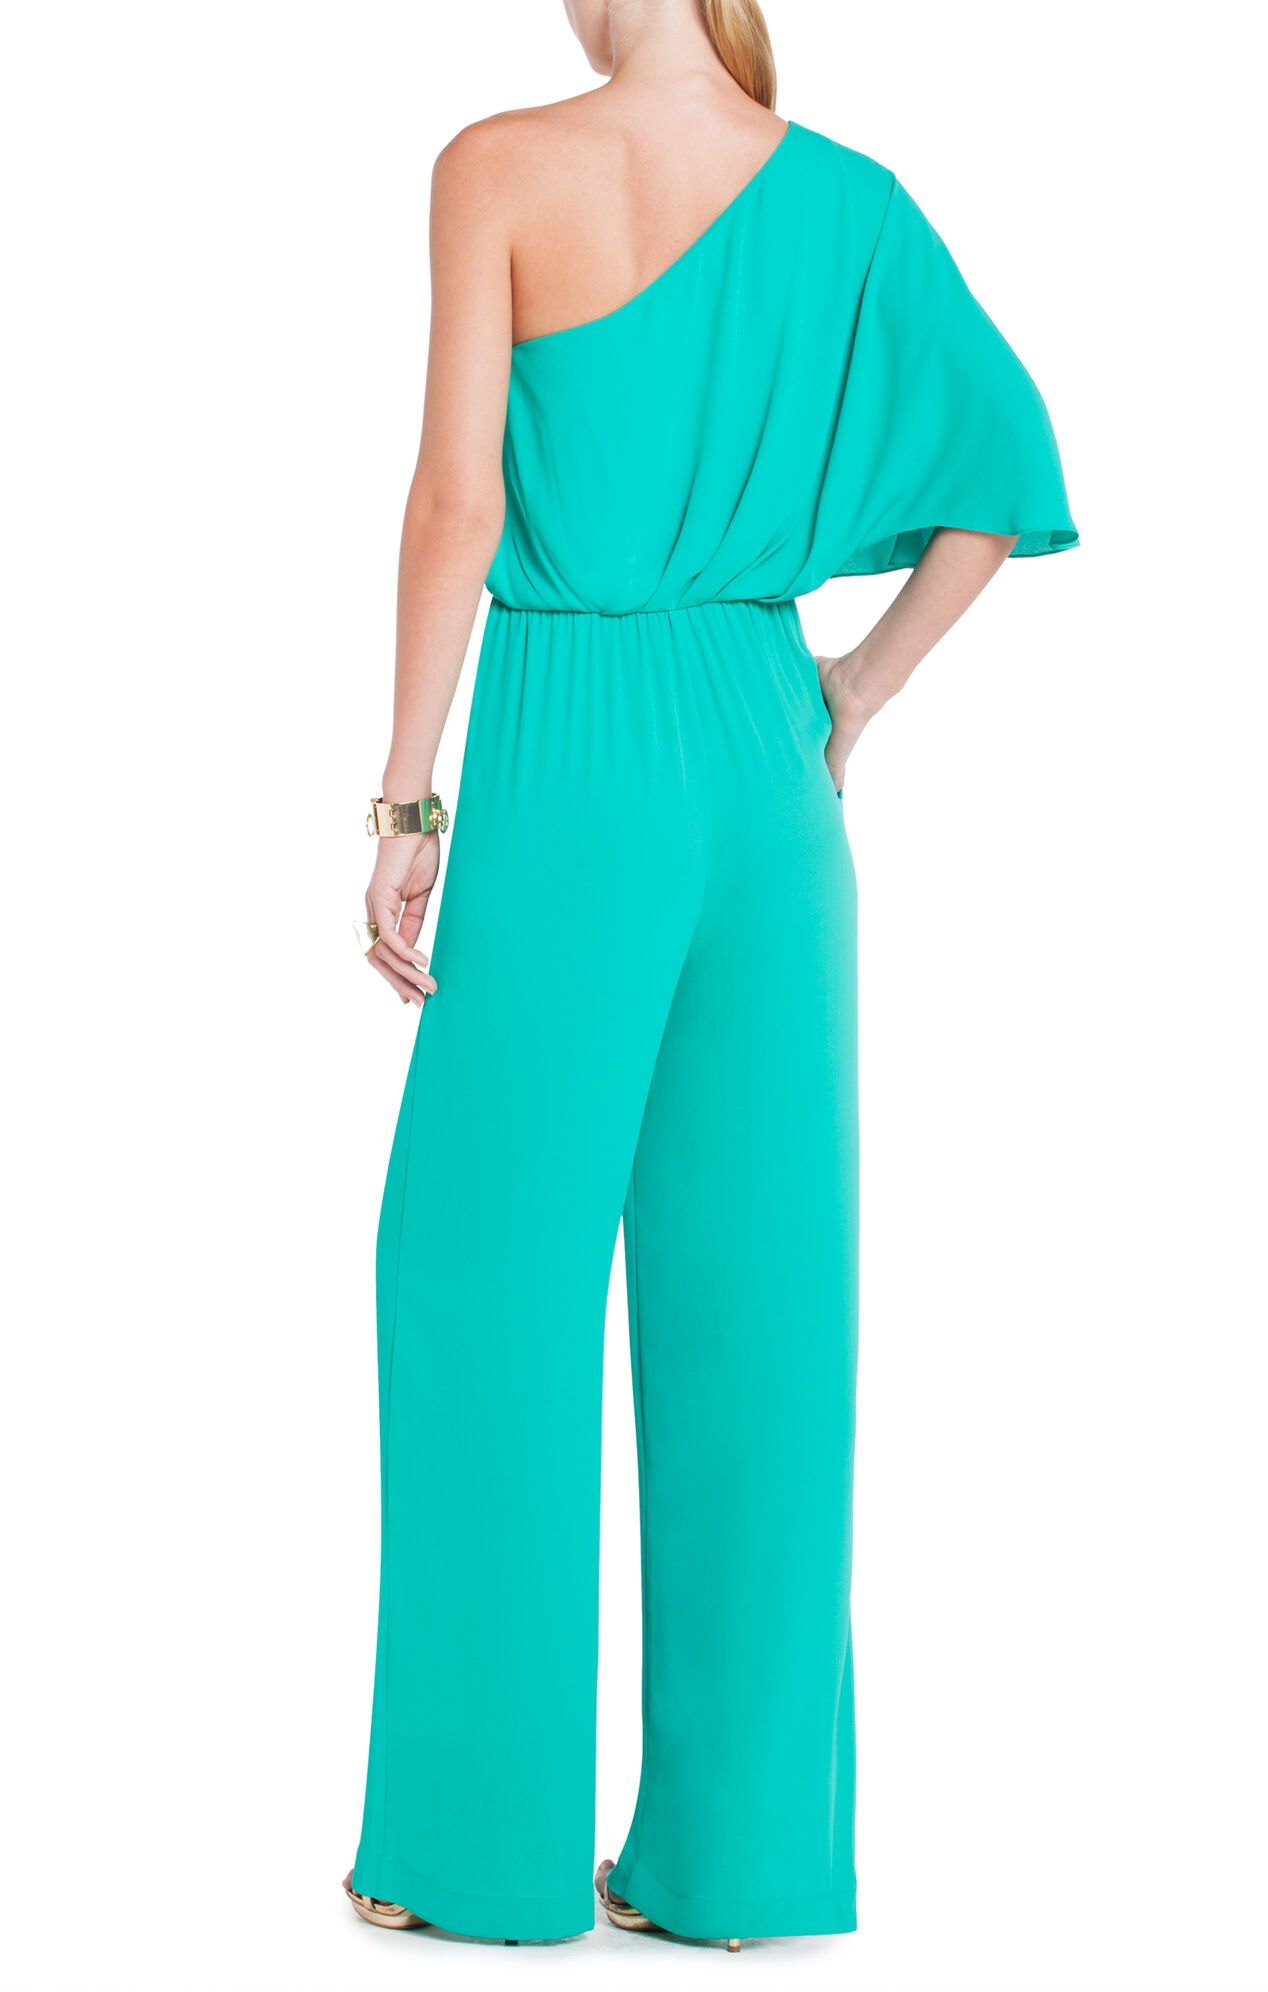 Leeo Draped One-Shoulder Jumpsuit